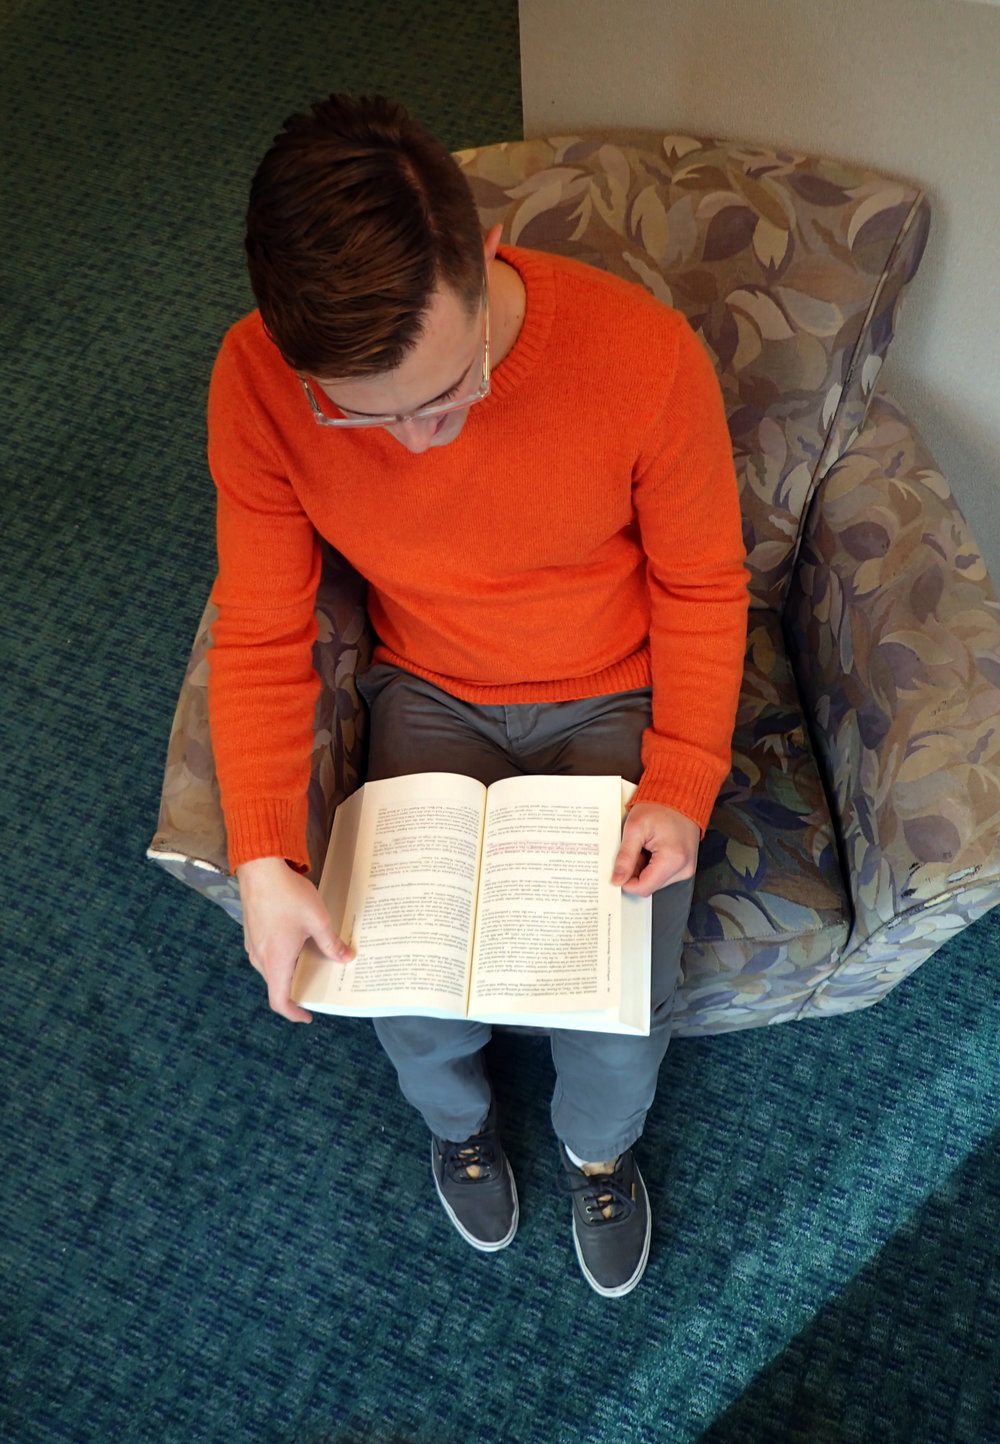 Holden Rasmussen, a junior philosophy major, sits and reads a novel by philosopher Walter Benjamin. Rasmussen said Benjamin has inspired him to research his ideas rather than